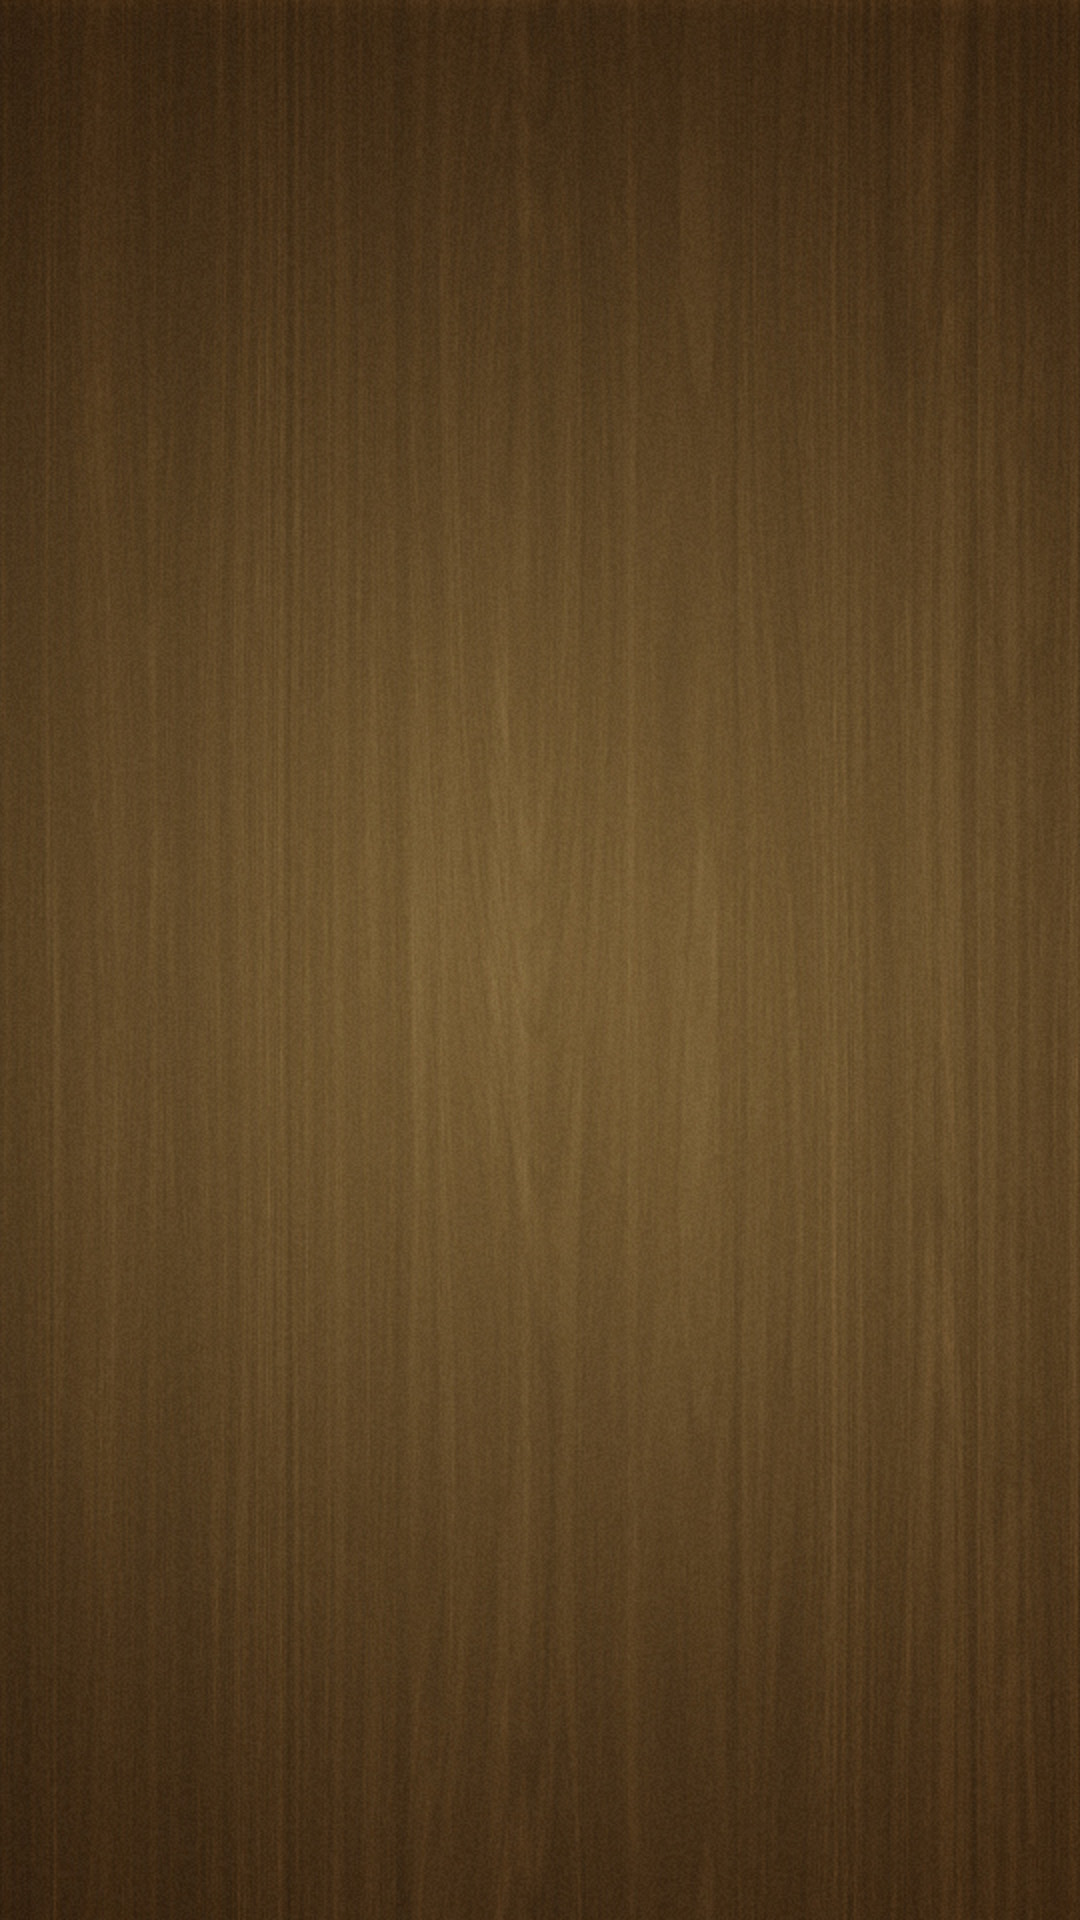 Wood dark background texture wallpaper background iphone 6 - Background Dark Wood Hd Wallpaper Iphone 6 Plus